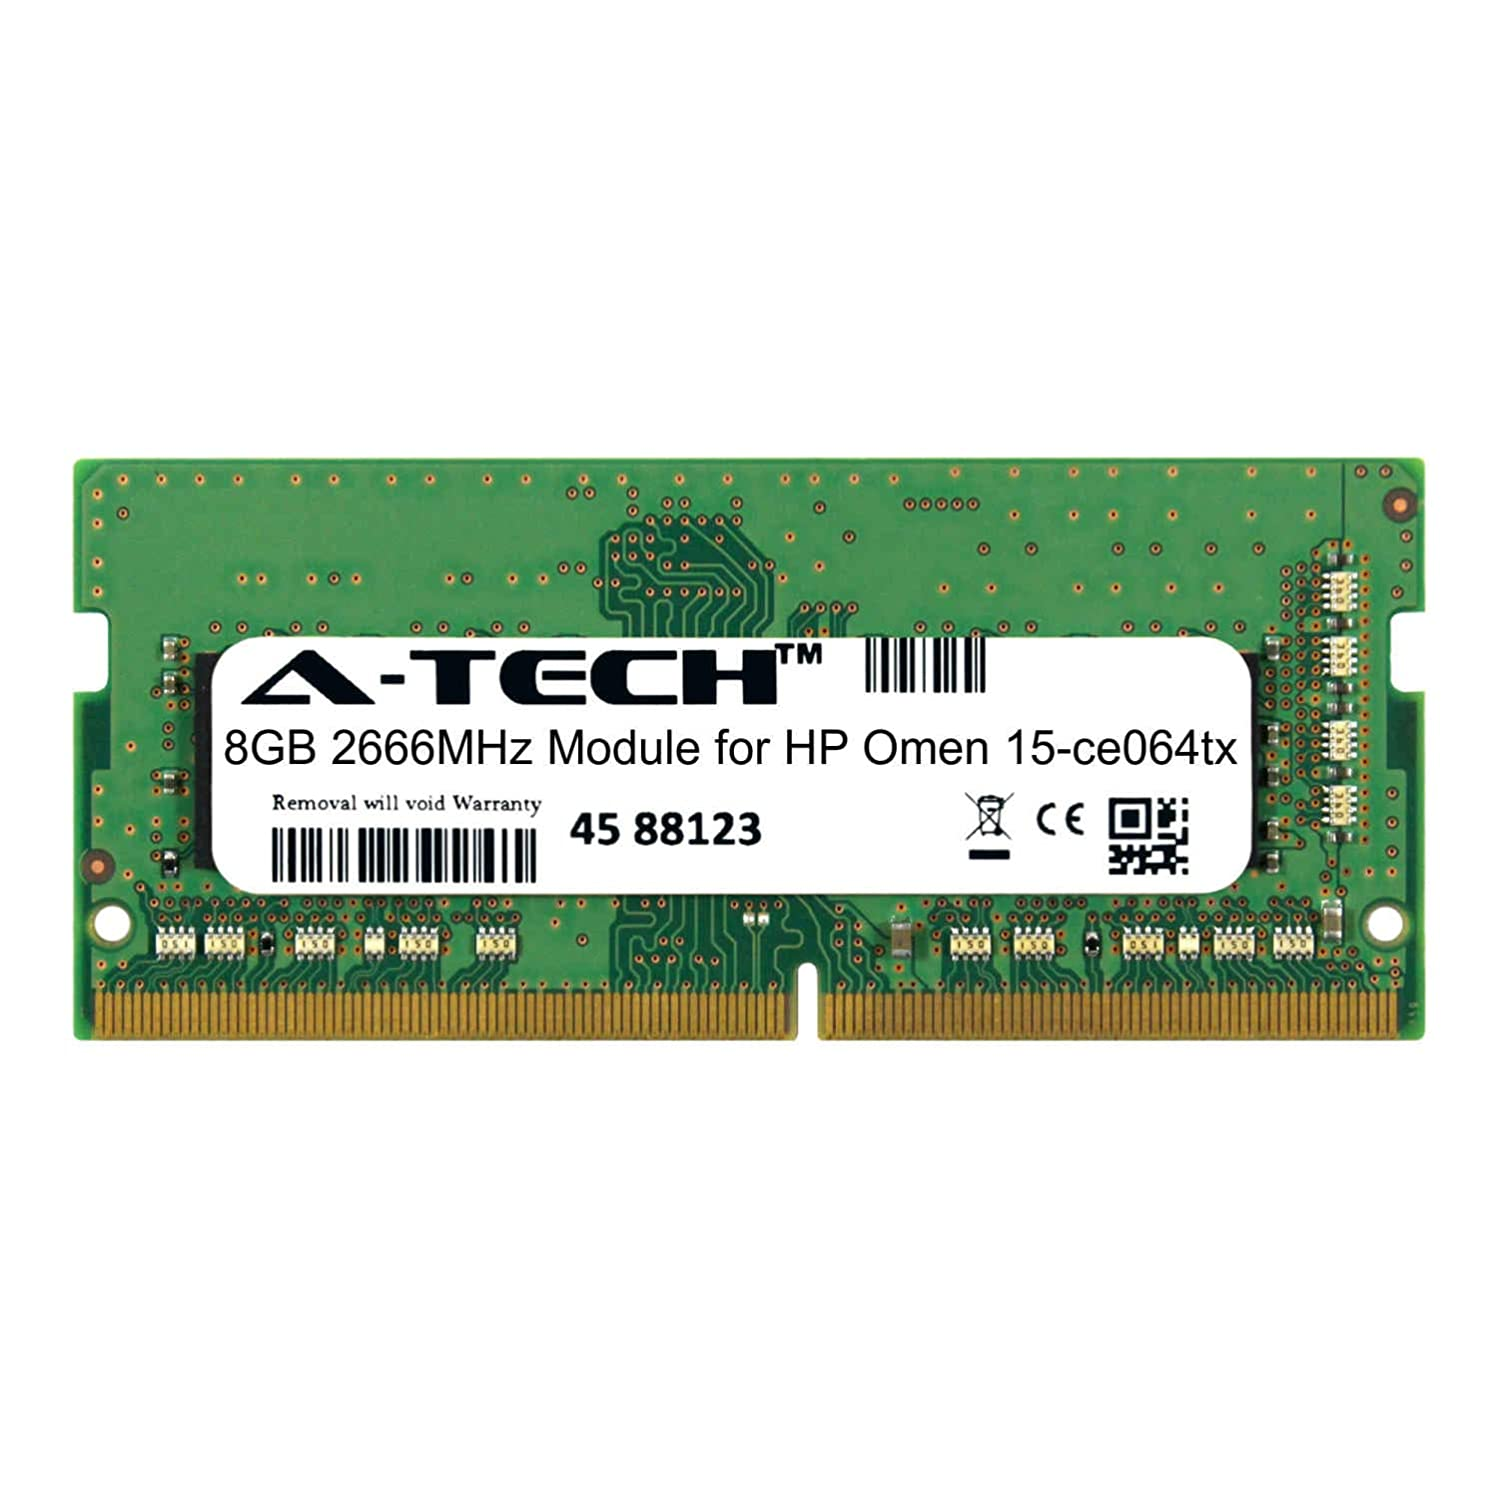 A-Tech 8GB Module for HP Omen 15-ce064tx Laptop & Notebook Compatible DDR4 2666Mhz Memory Ram (ATMS280377A25978X1)